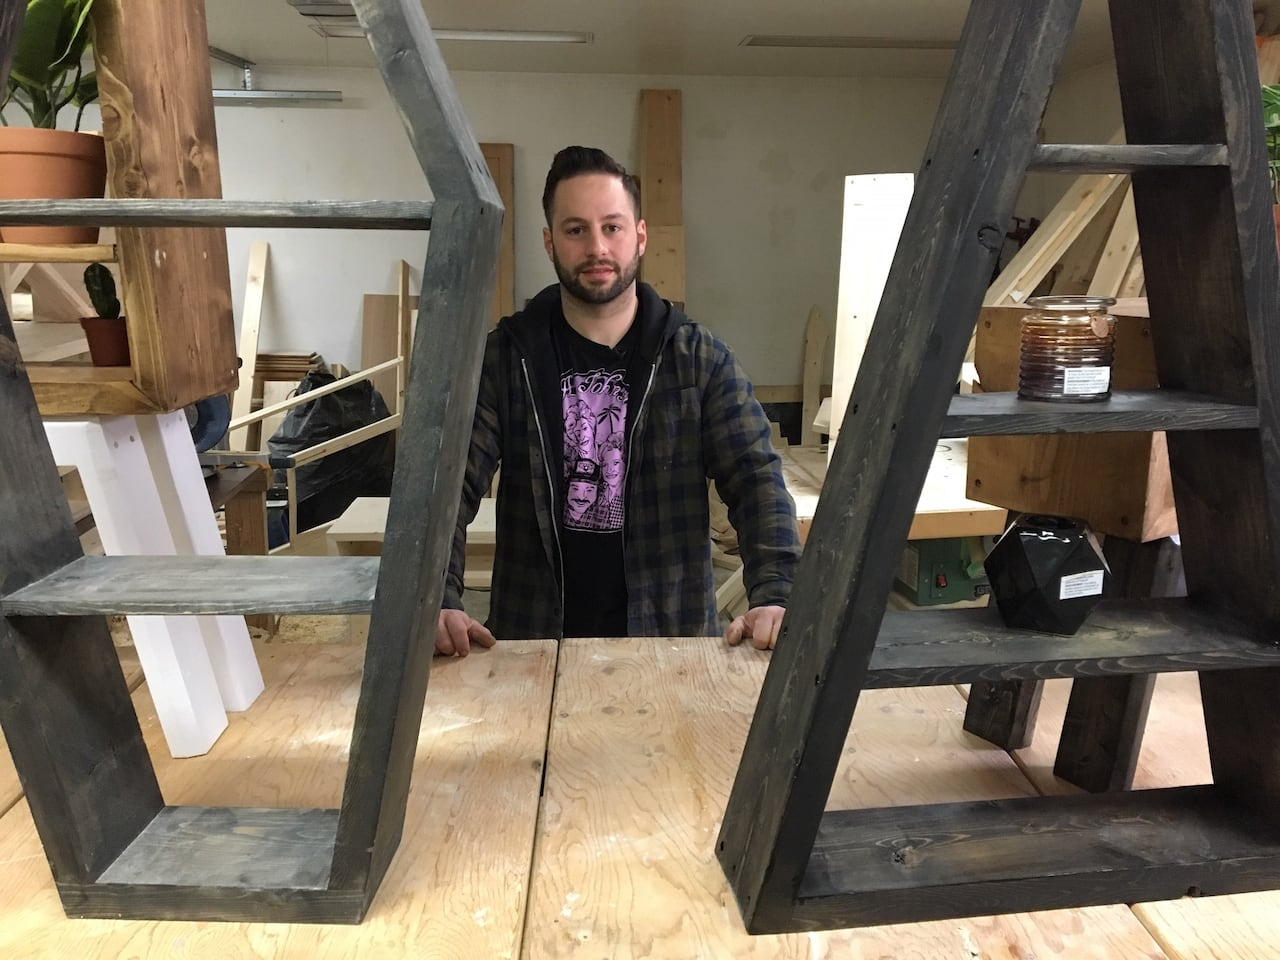 Imperfect Condition Edmonton Woodworker Shapes Furniture